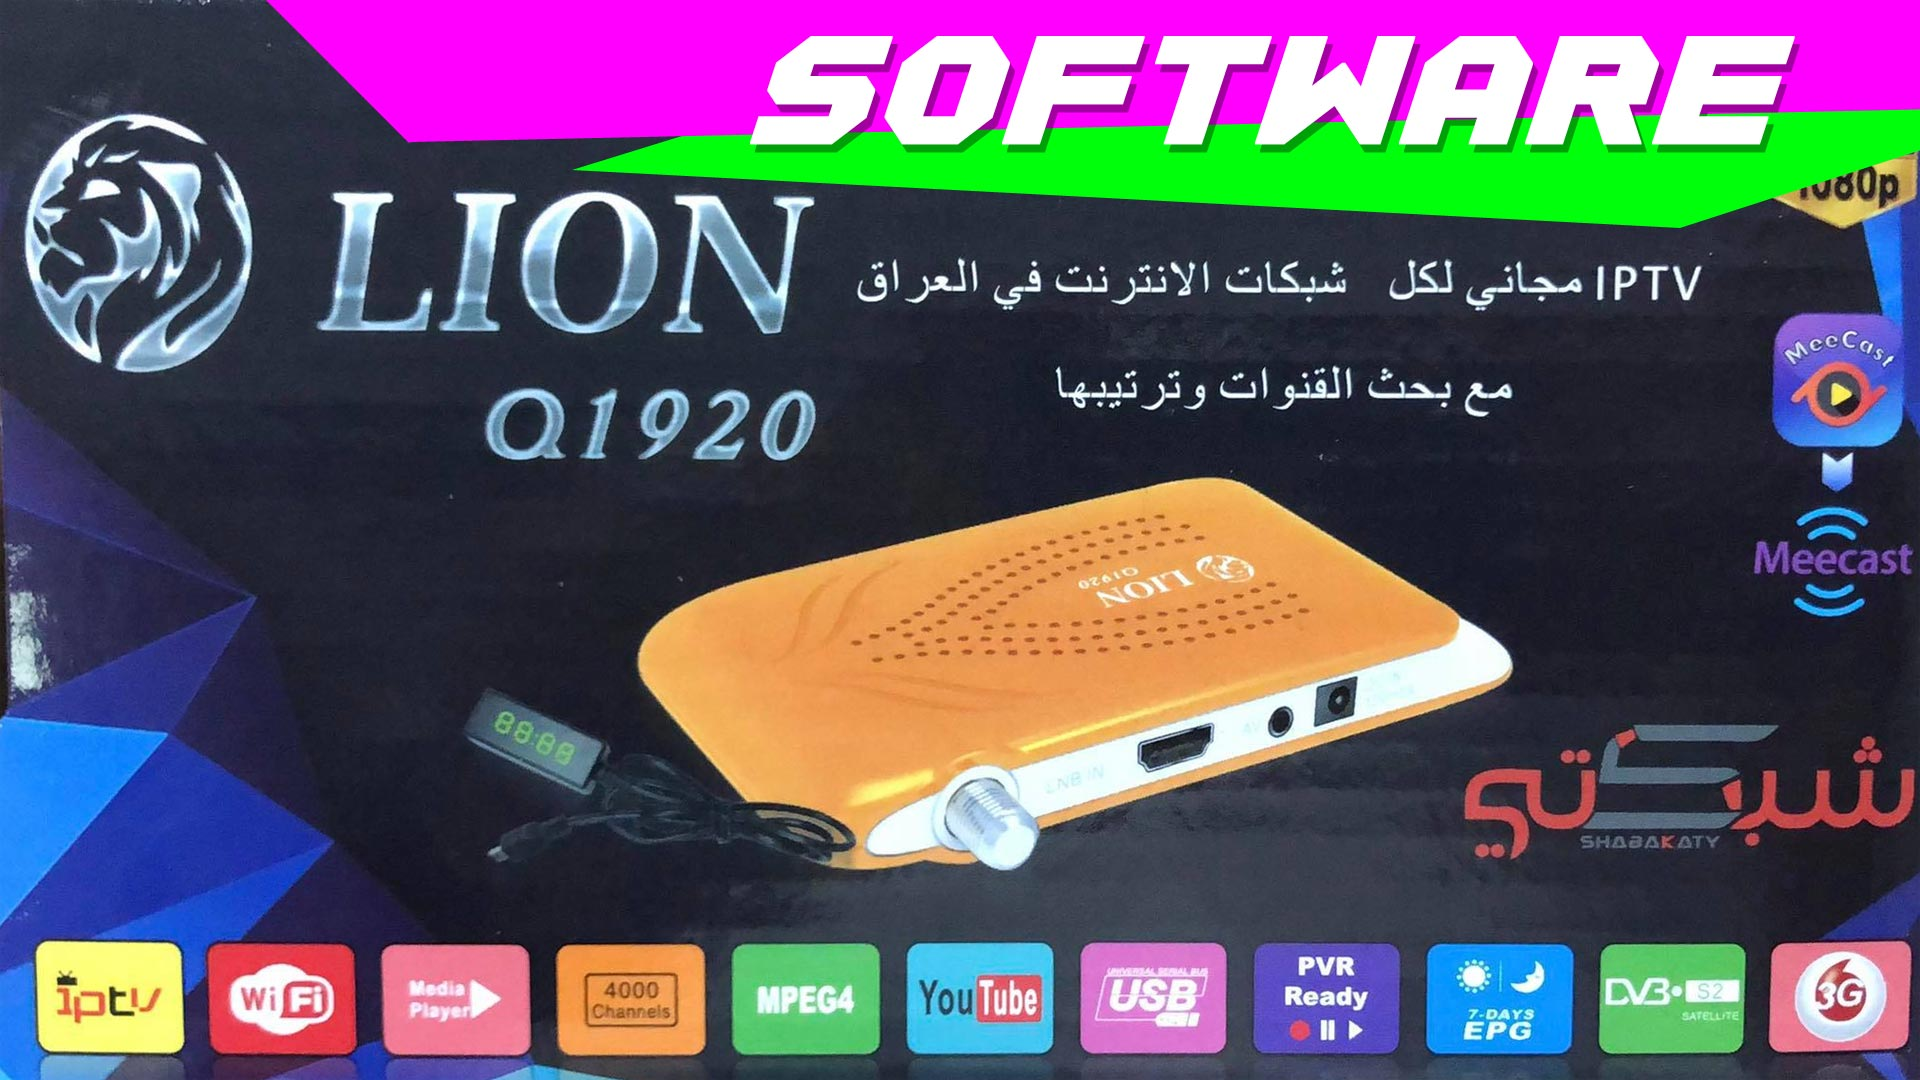 Download Software Lion Q1920 New Update Firmware Receiver GX6605S